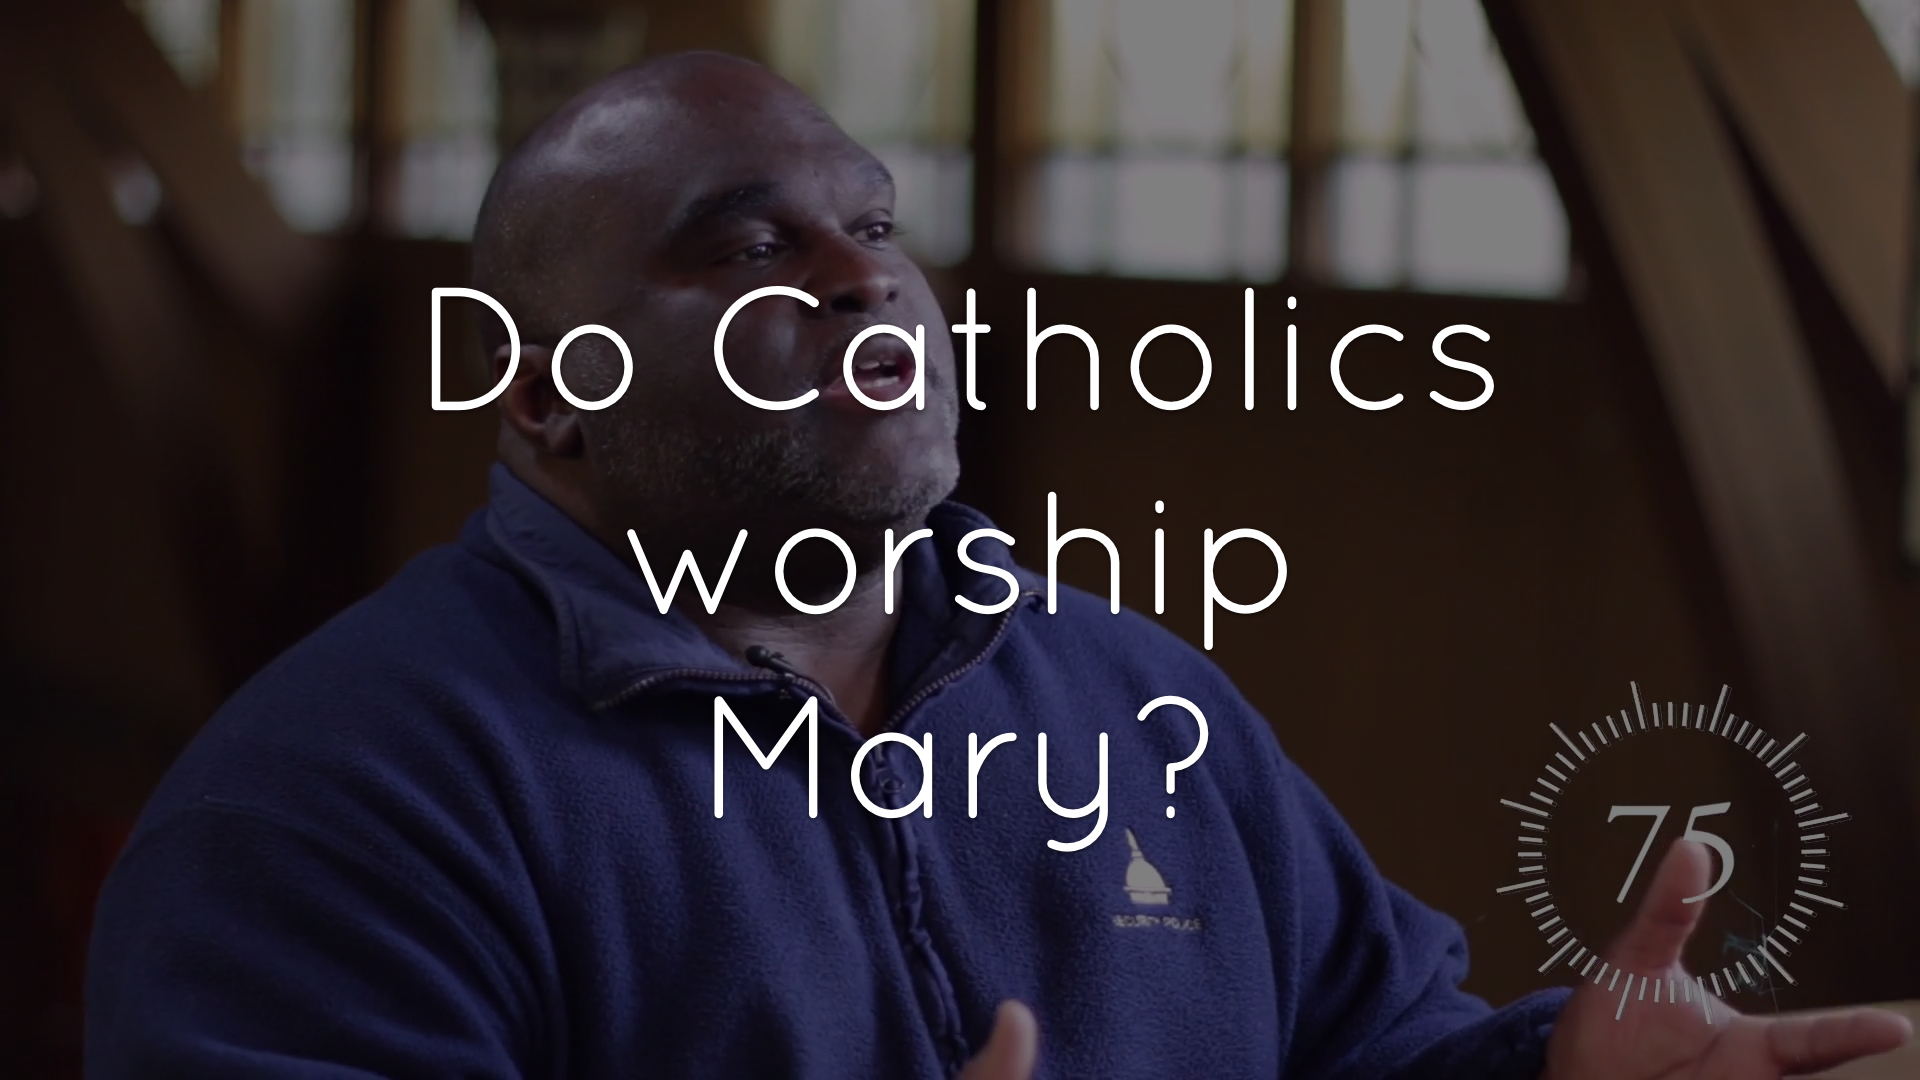 Do Catholics worship Mary?